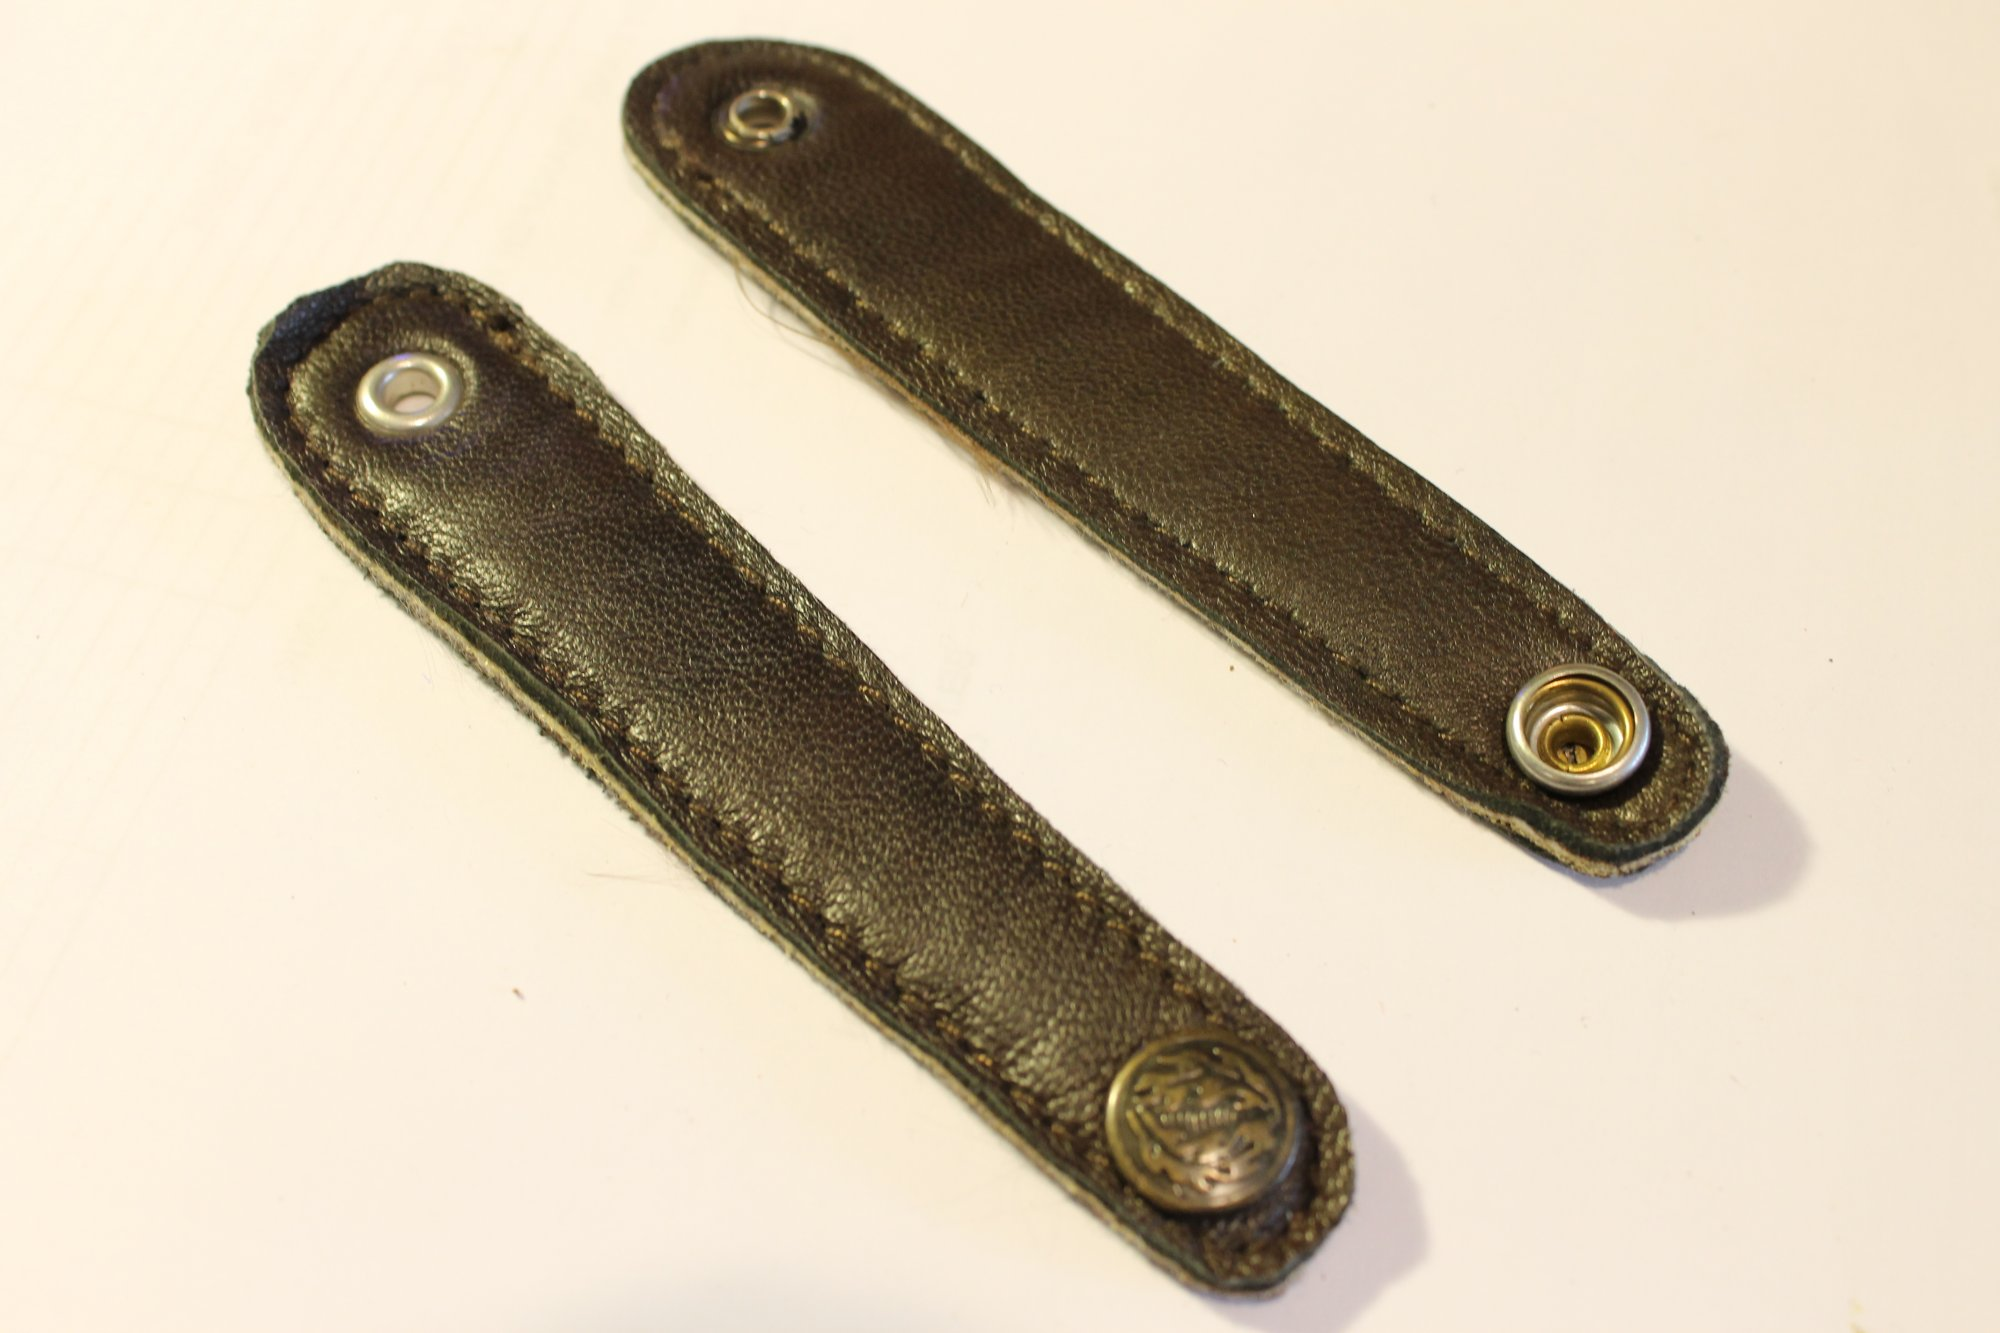 BA3/5 - Accordion Bellows Clasp Part - Pair of 2 Pieces